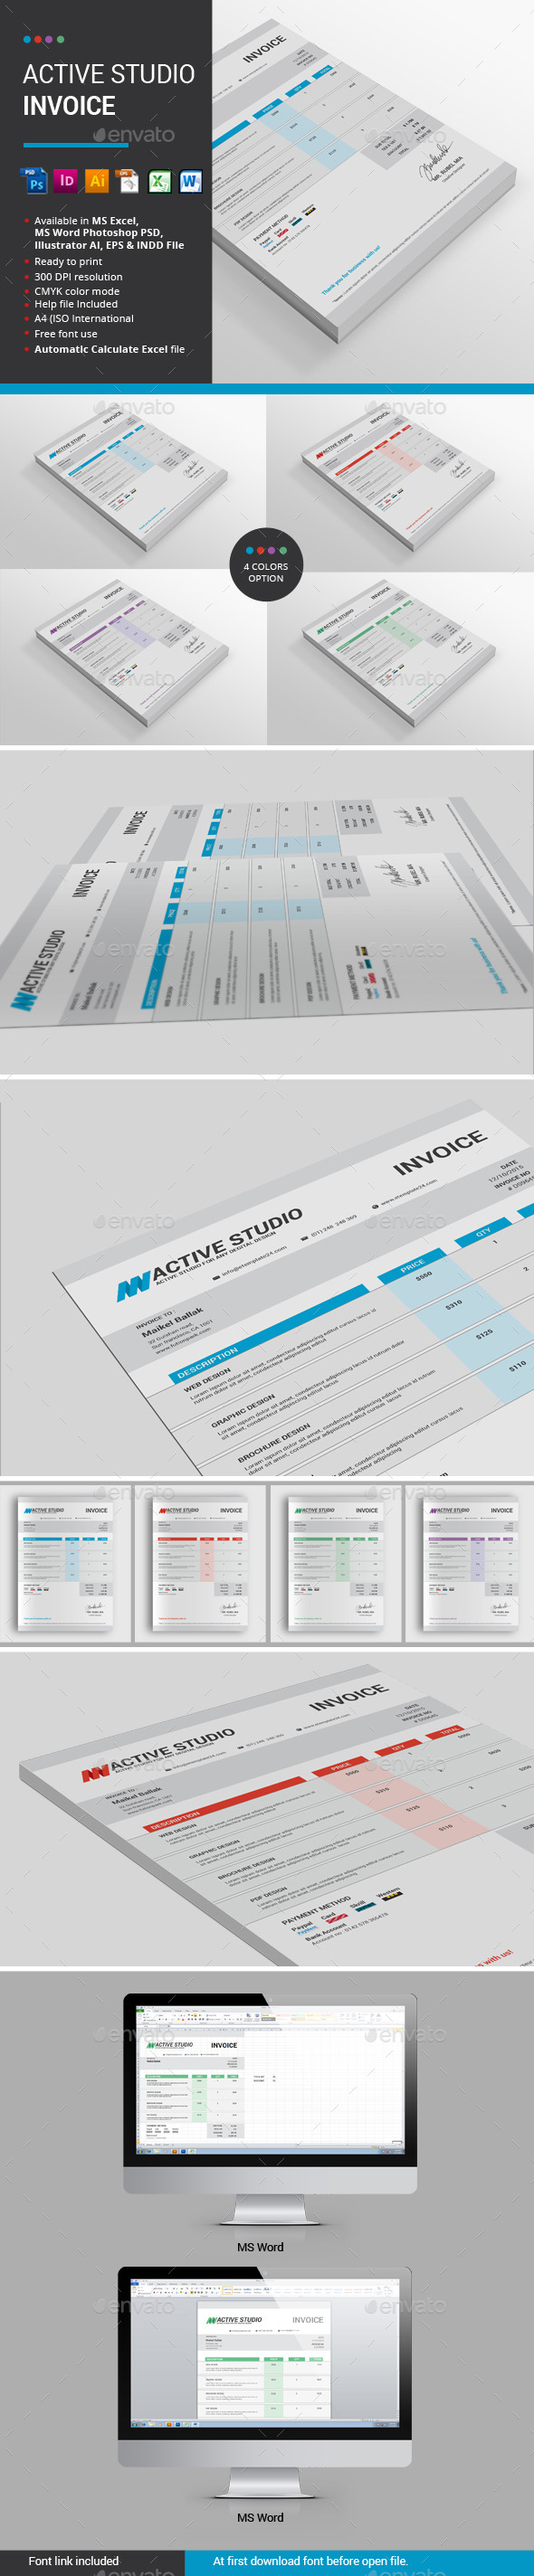 Active Studio Invoice - Proposals & Invoices Stationery